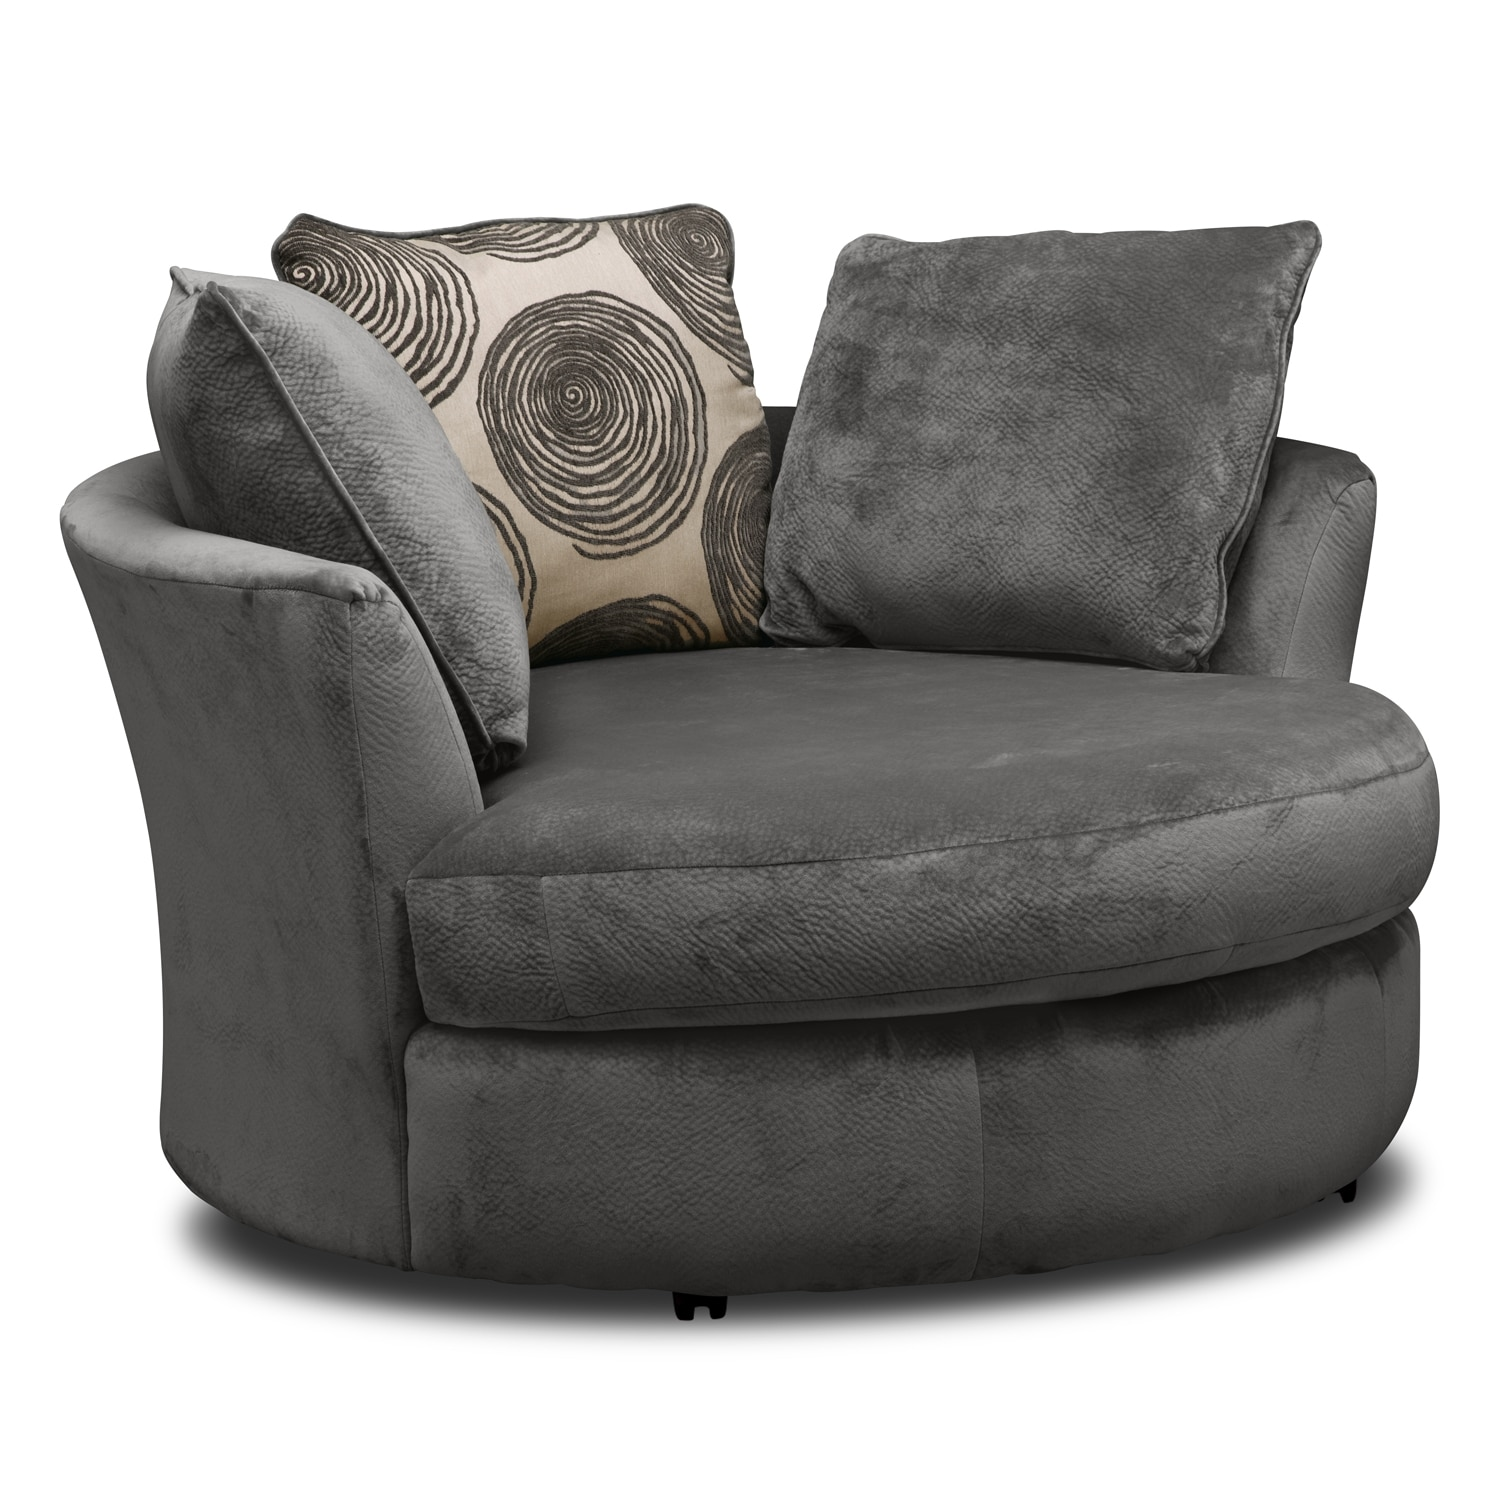 marvellous living room swivel chairs | Cordelle Swivel Chair - Gray | American Signature Furniture